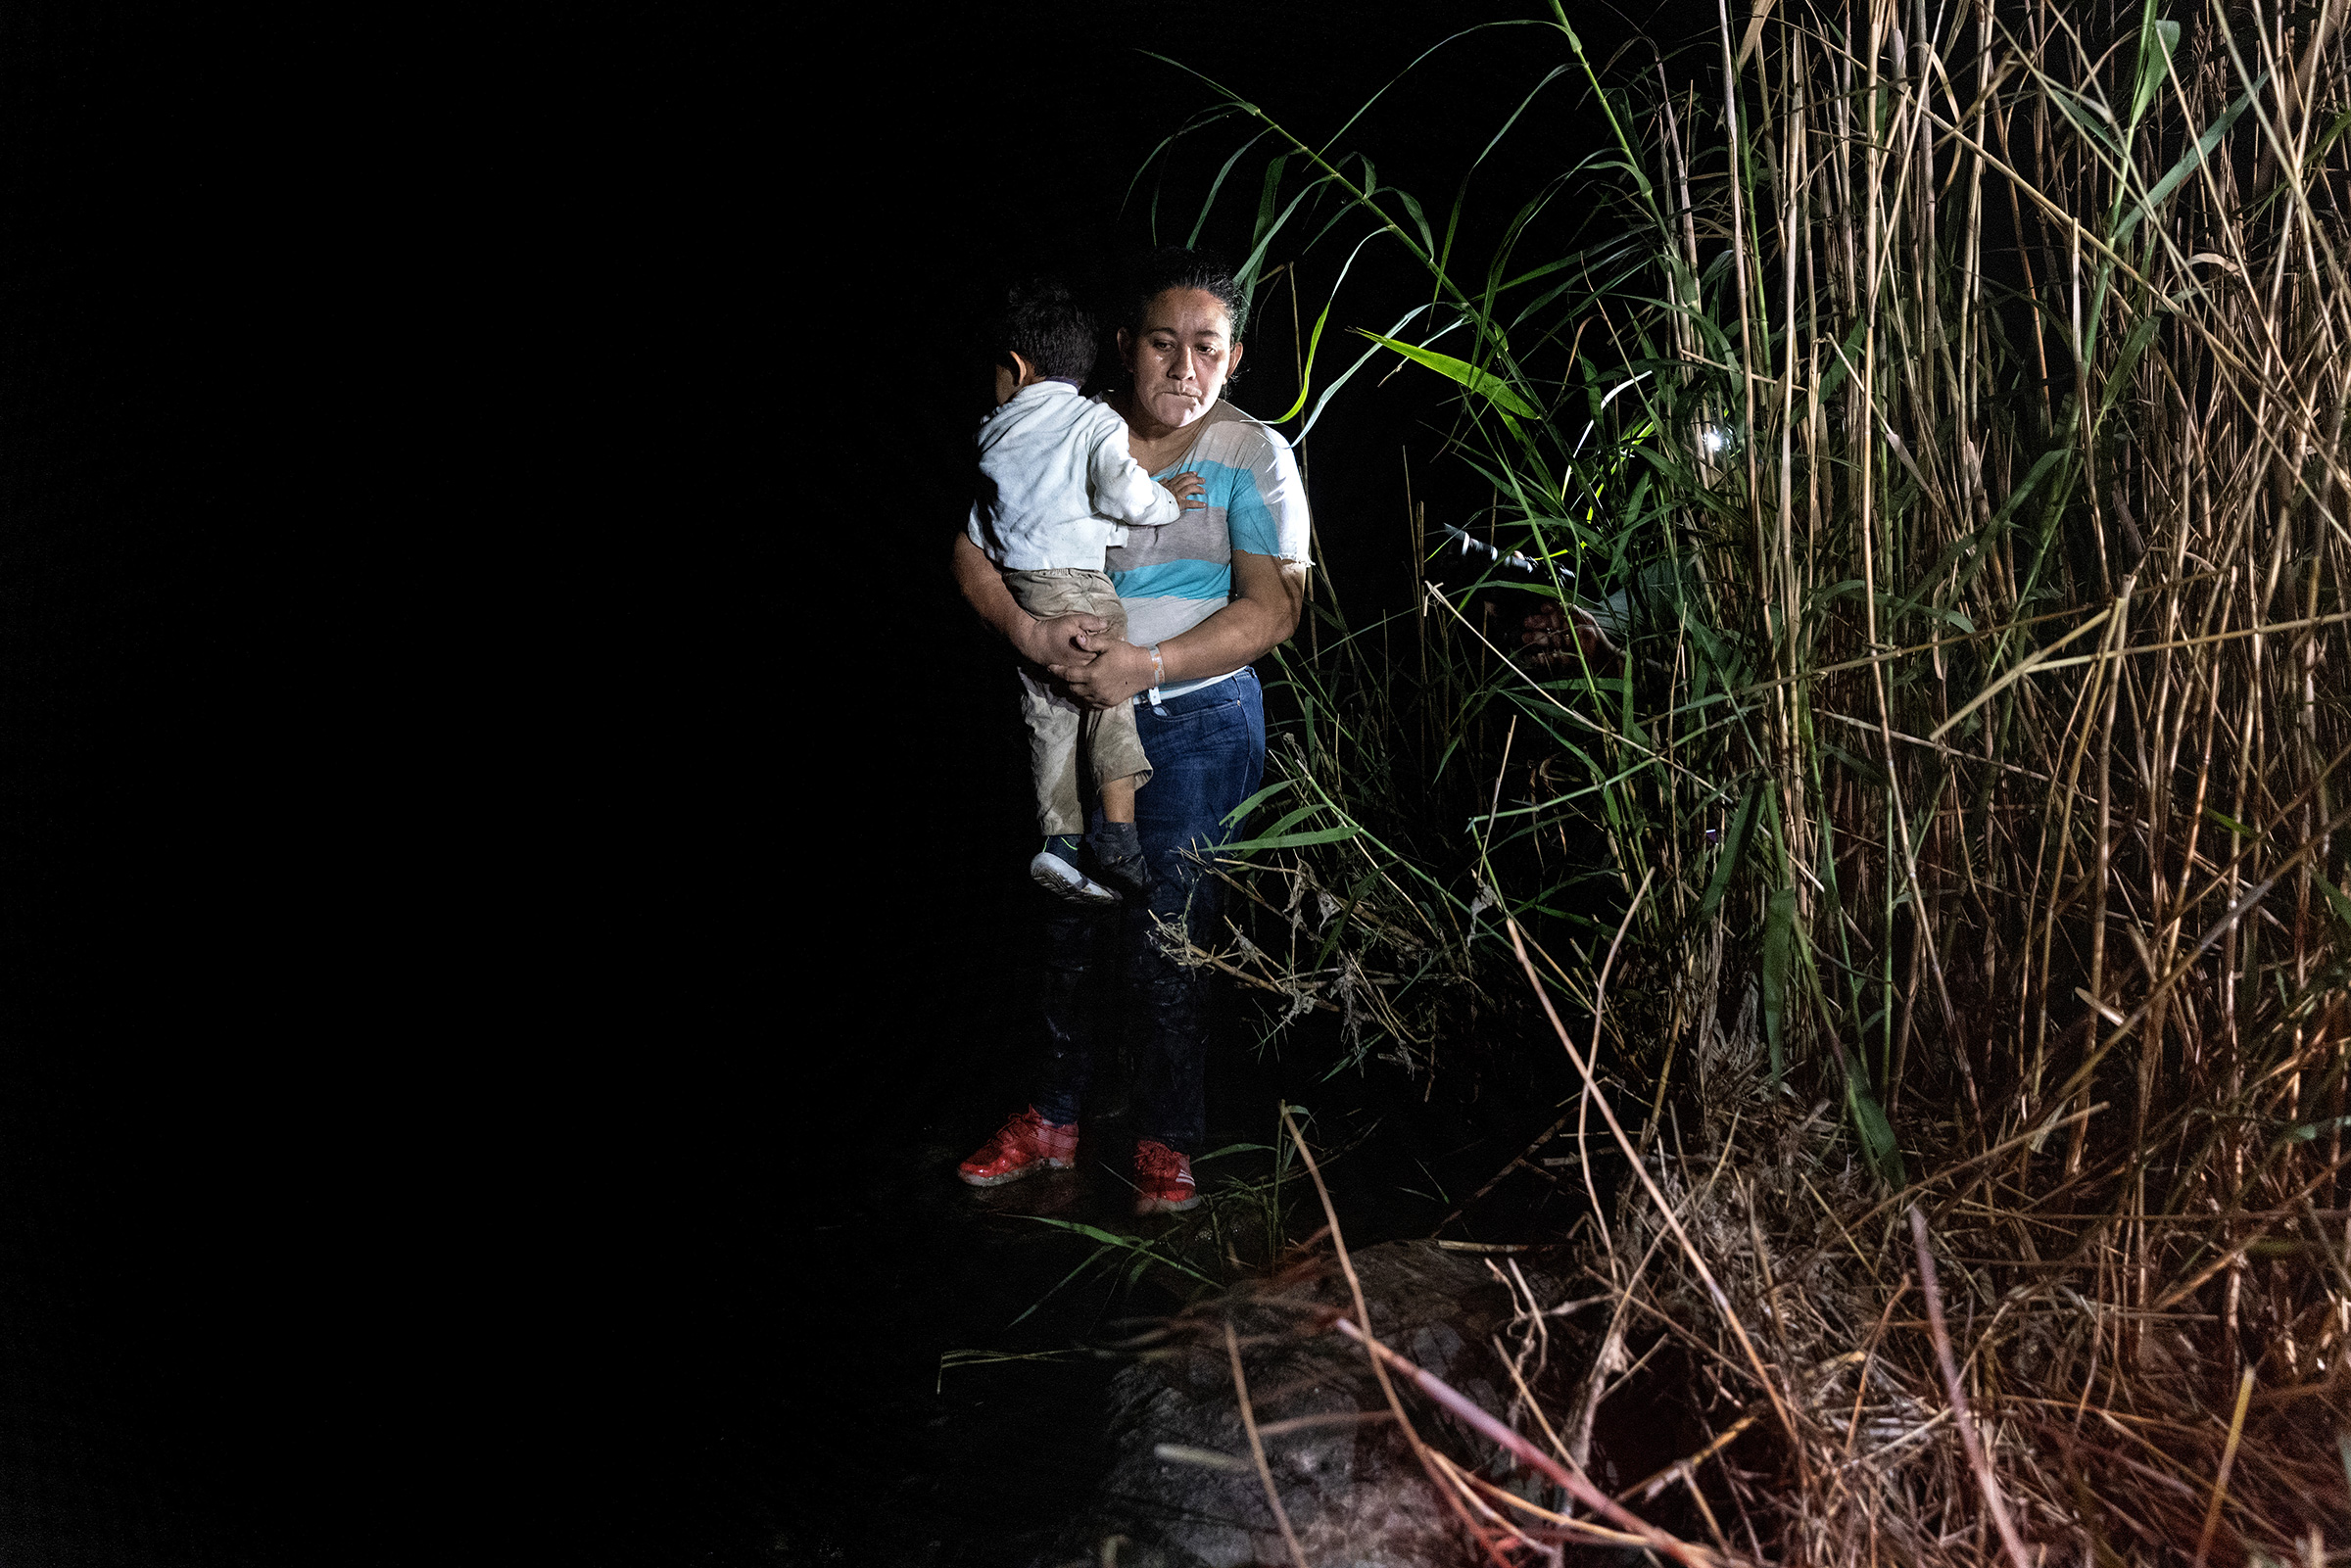 A mother holds her son on the bank of the Rio Grande in Roma, Texas, after being smuggled across the U.S.-Mexico border on April 14, 2021.